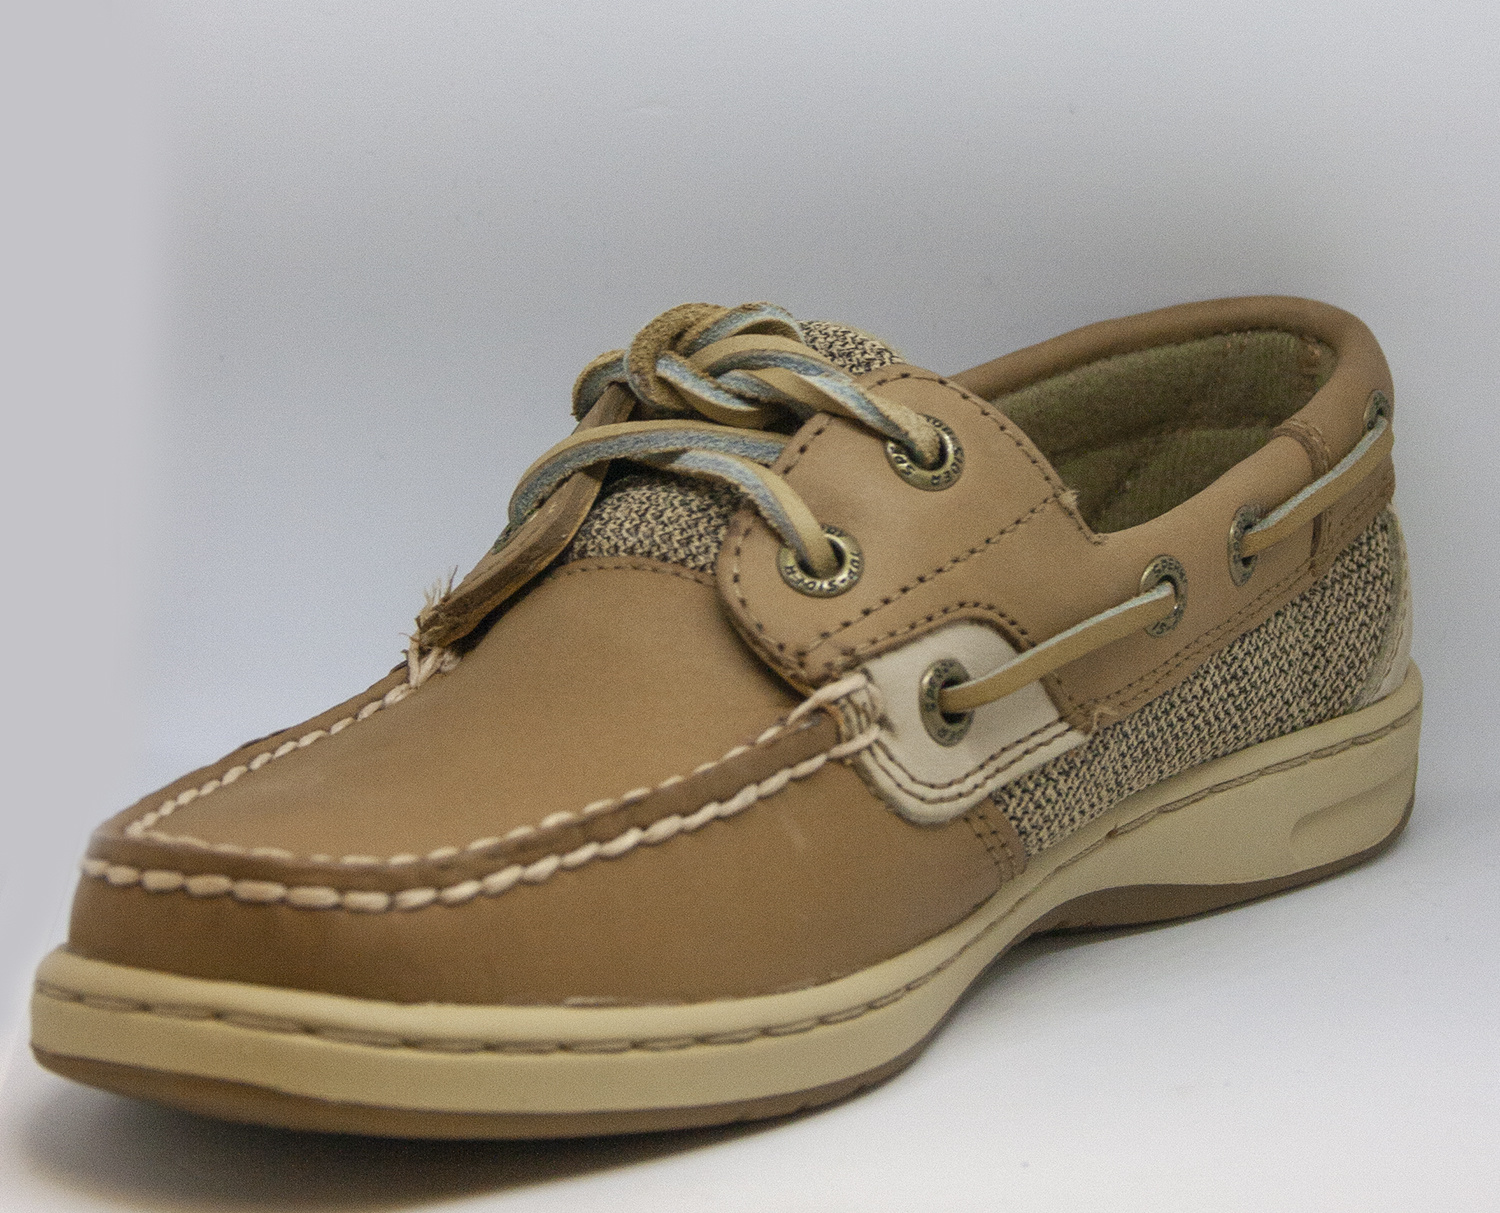 Sperry Men's Uniform Shoes